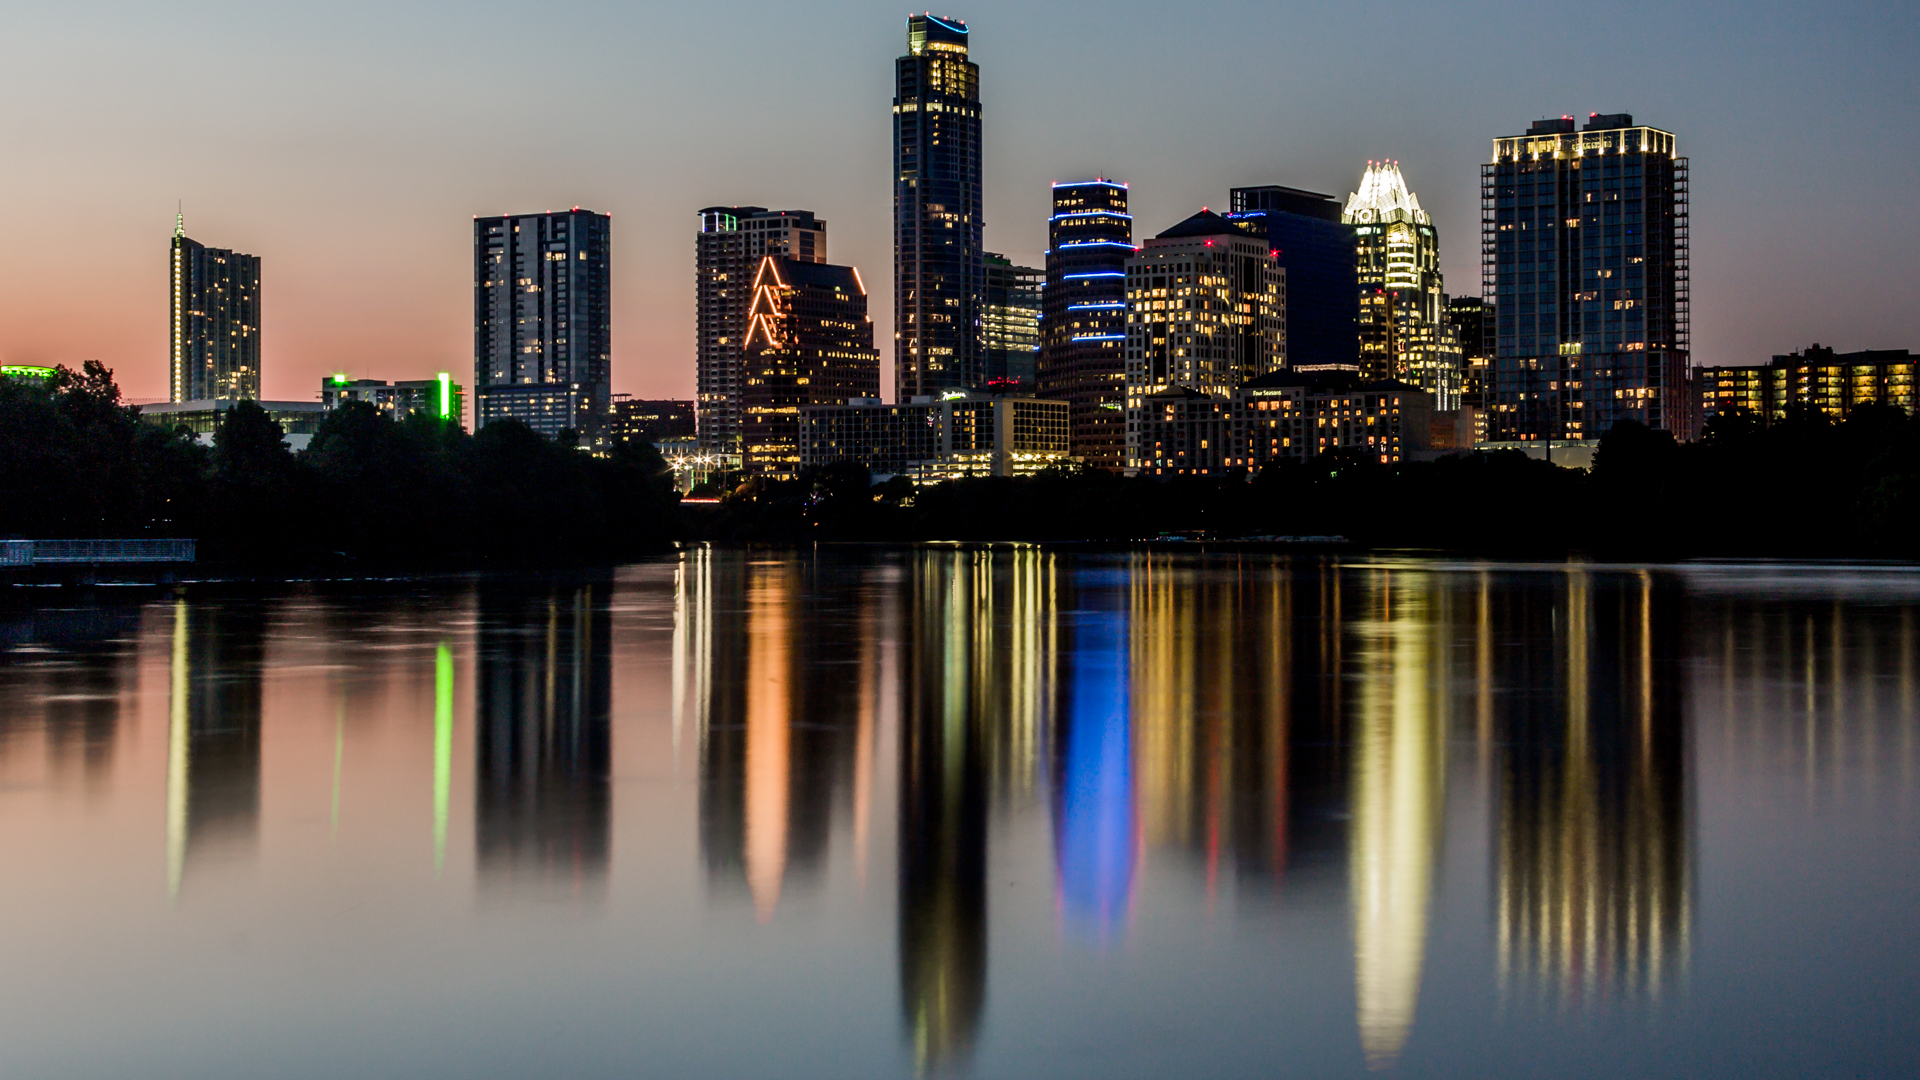 """Austin Evening"" by User:Argash. Licensed under CC BY-SA 3.0 via Commons - https://commons.wikimedia.org/wiki/File:Austin_Evening.jpg#/media/File:Austin_Evening.jpg"